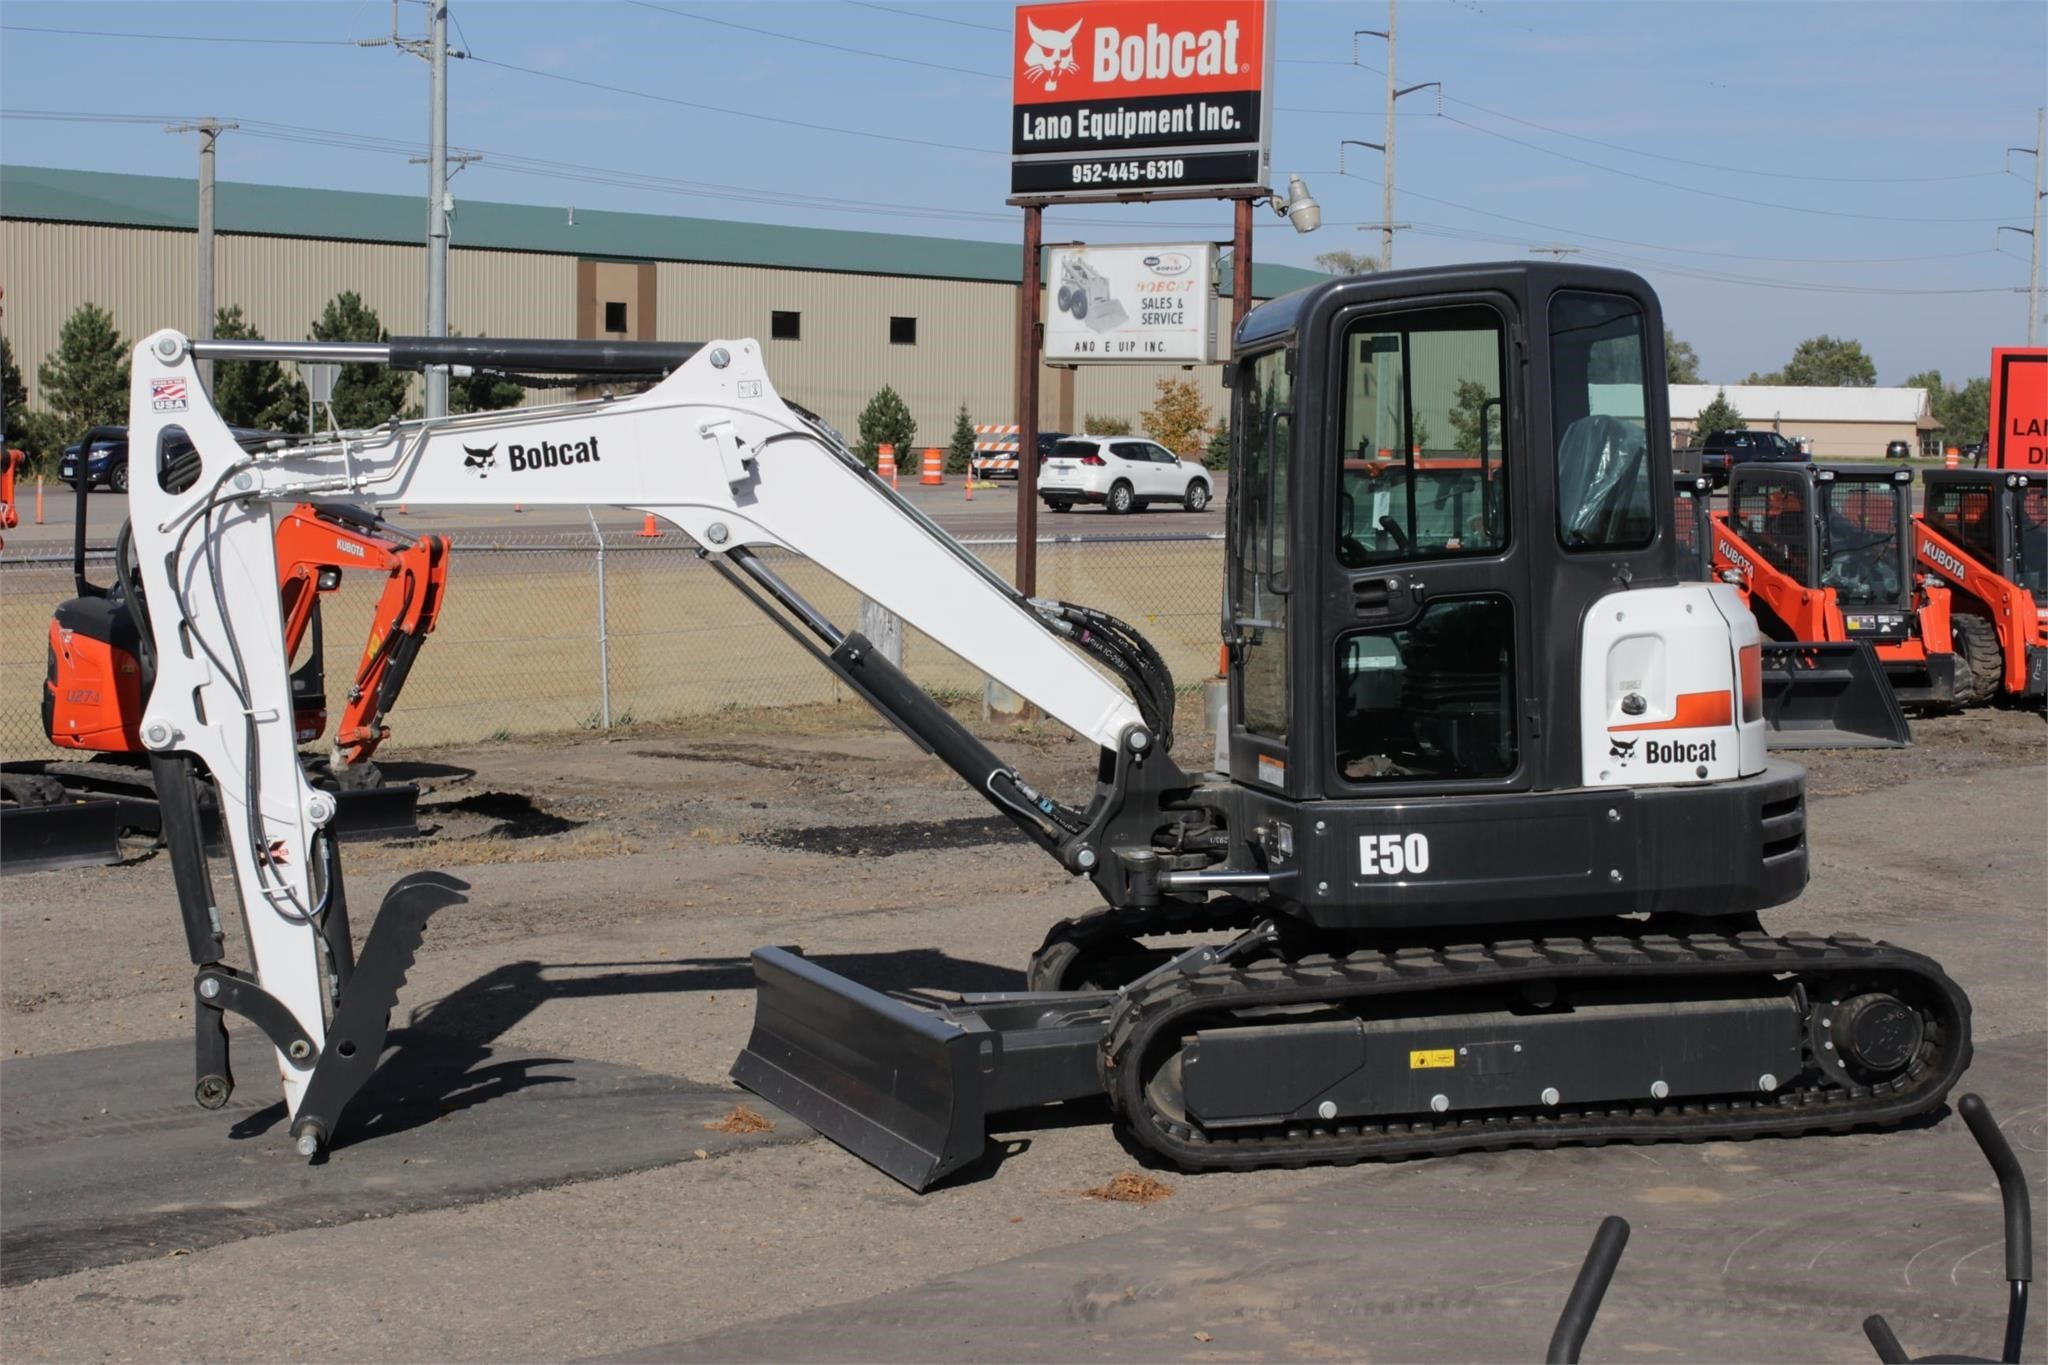 2020 Bobcat E50 Excavators and Mini Excavator